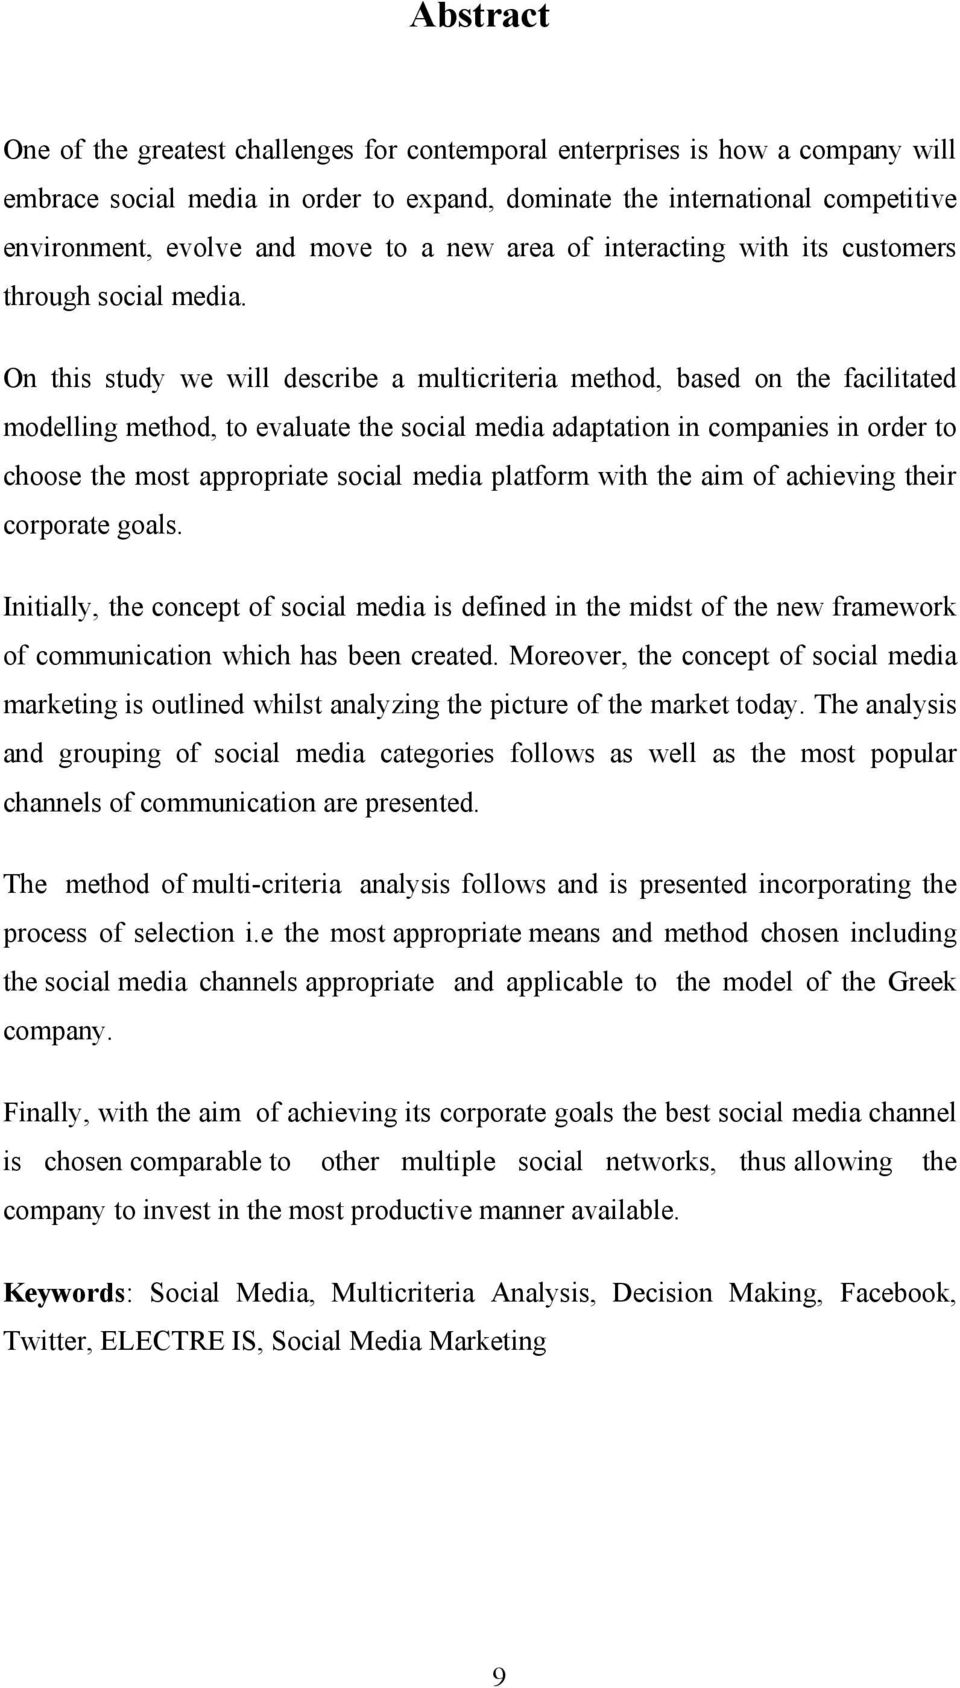 On this study we will describe a multicriteria method, based on the facilitated modelling method, to evaluate the social media adaptation in companies in order to choose the most appropriate social